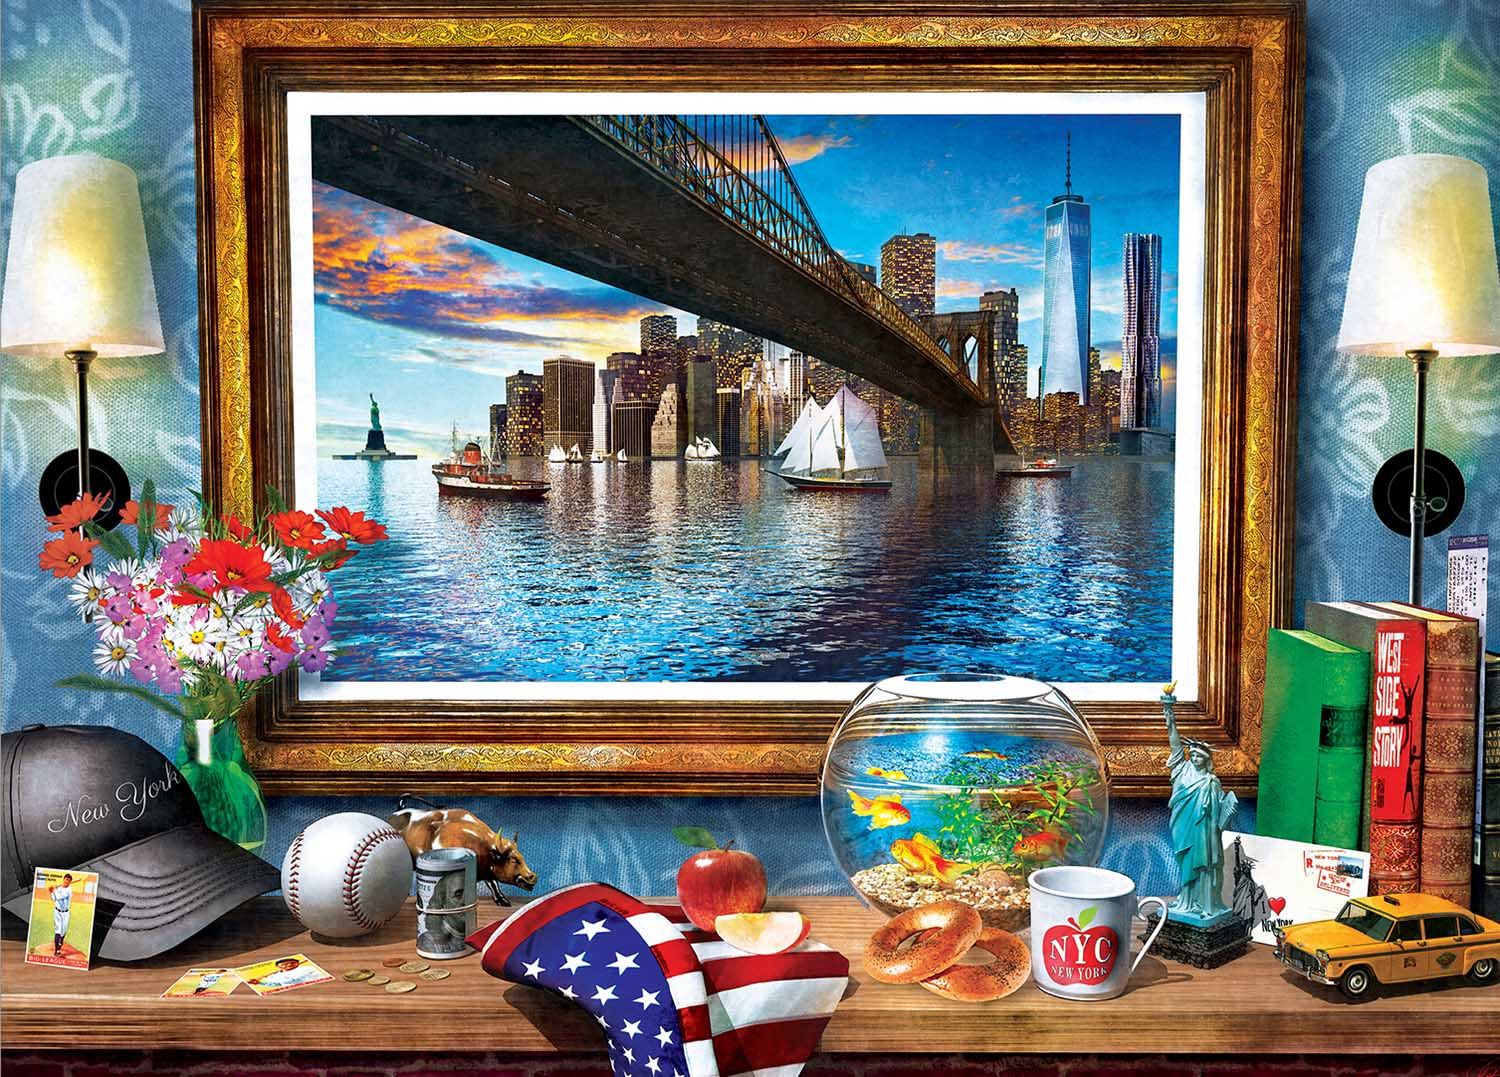 A New York View New York Jigsaw Puzzle